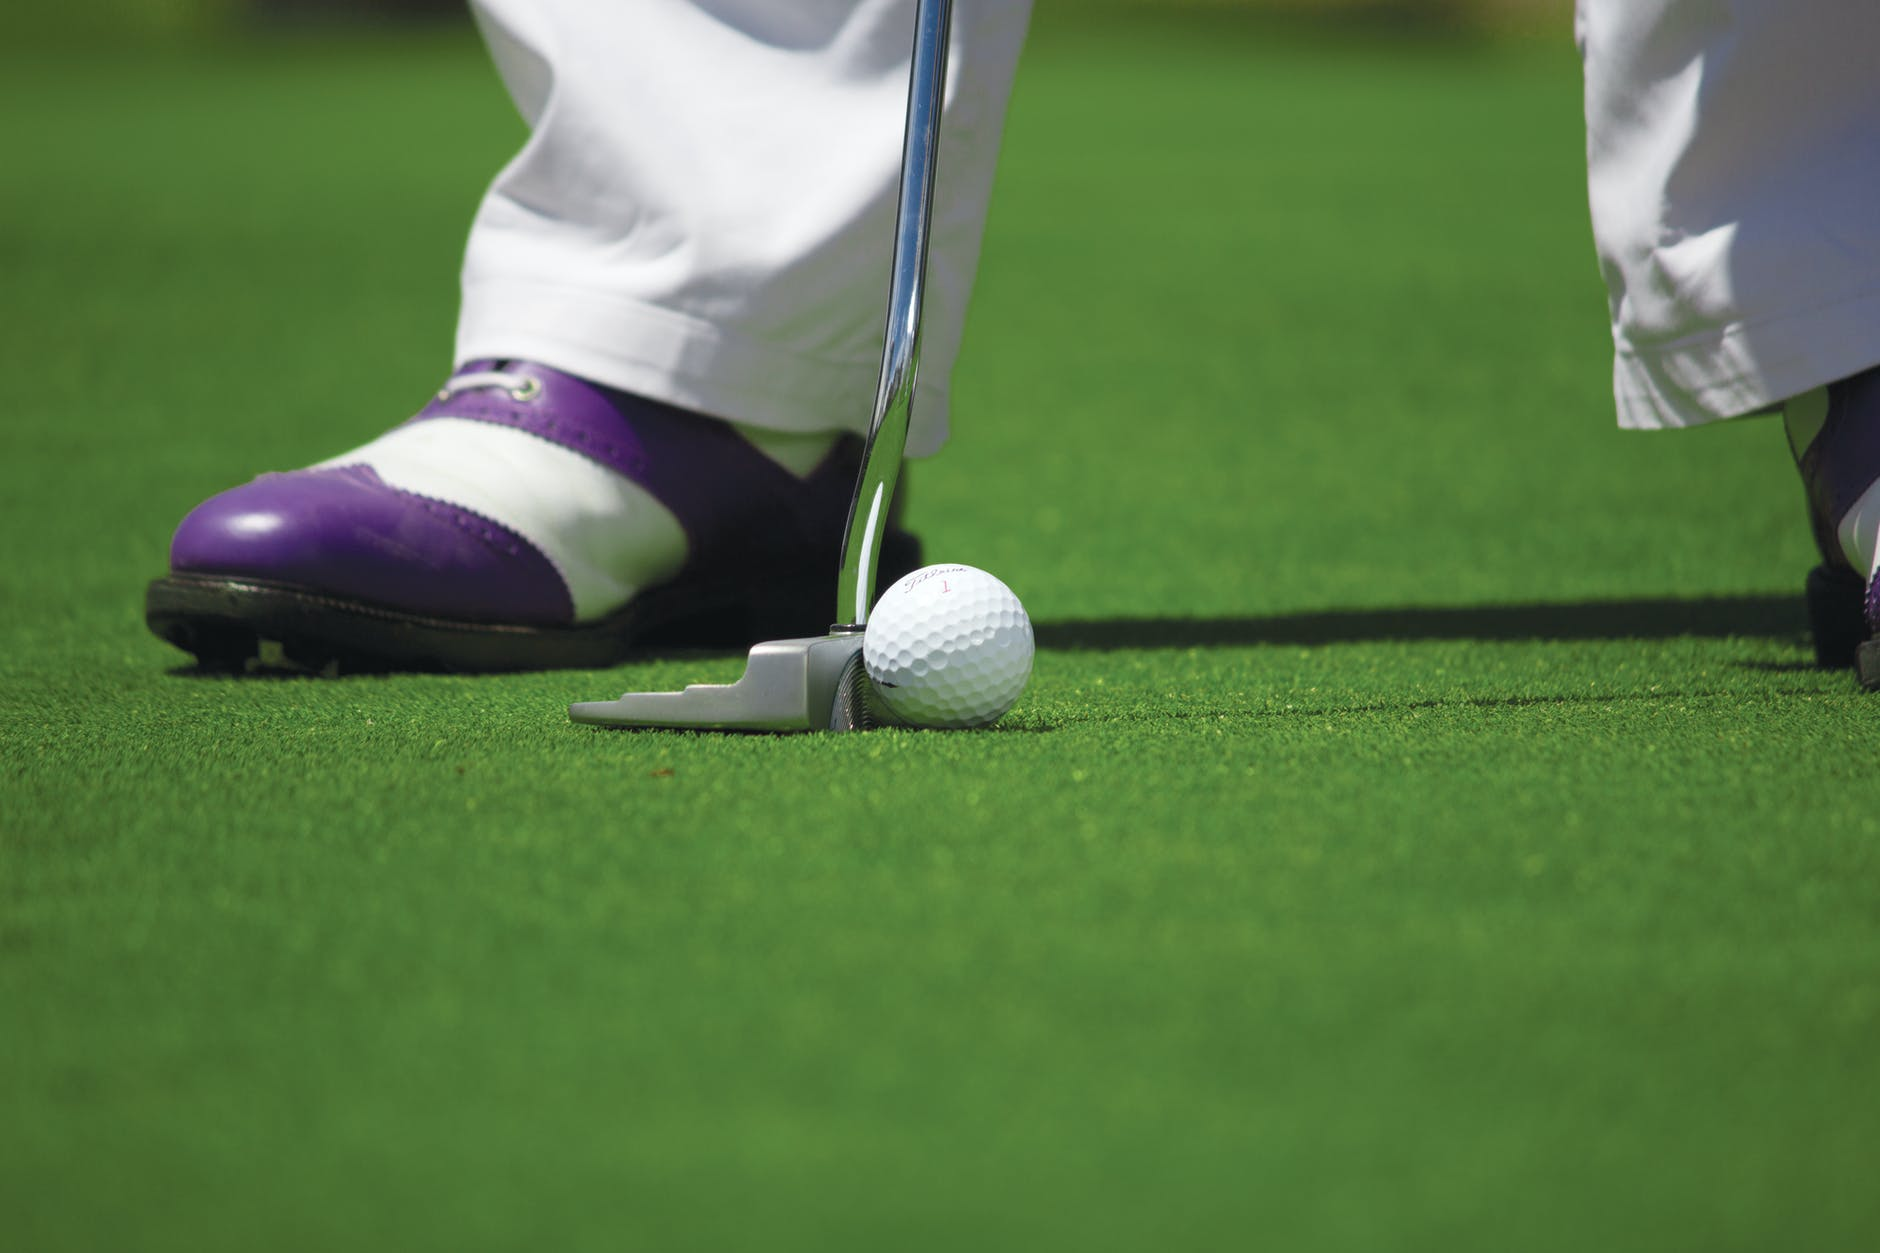 A close up of someone putting on a golf green. They have on purple and white golf shoes and white pants.